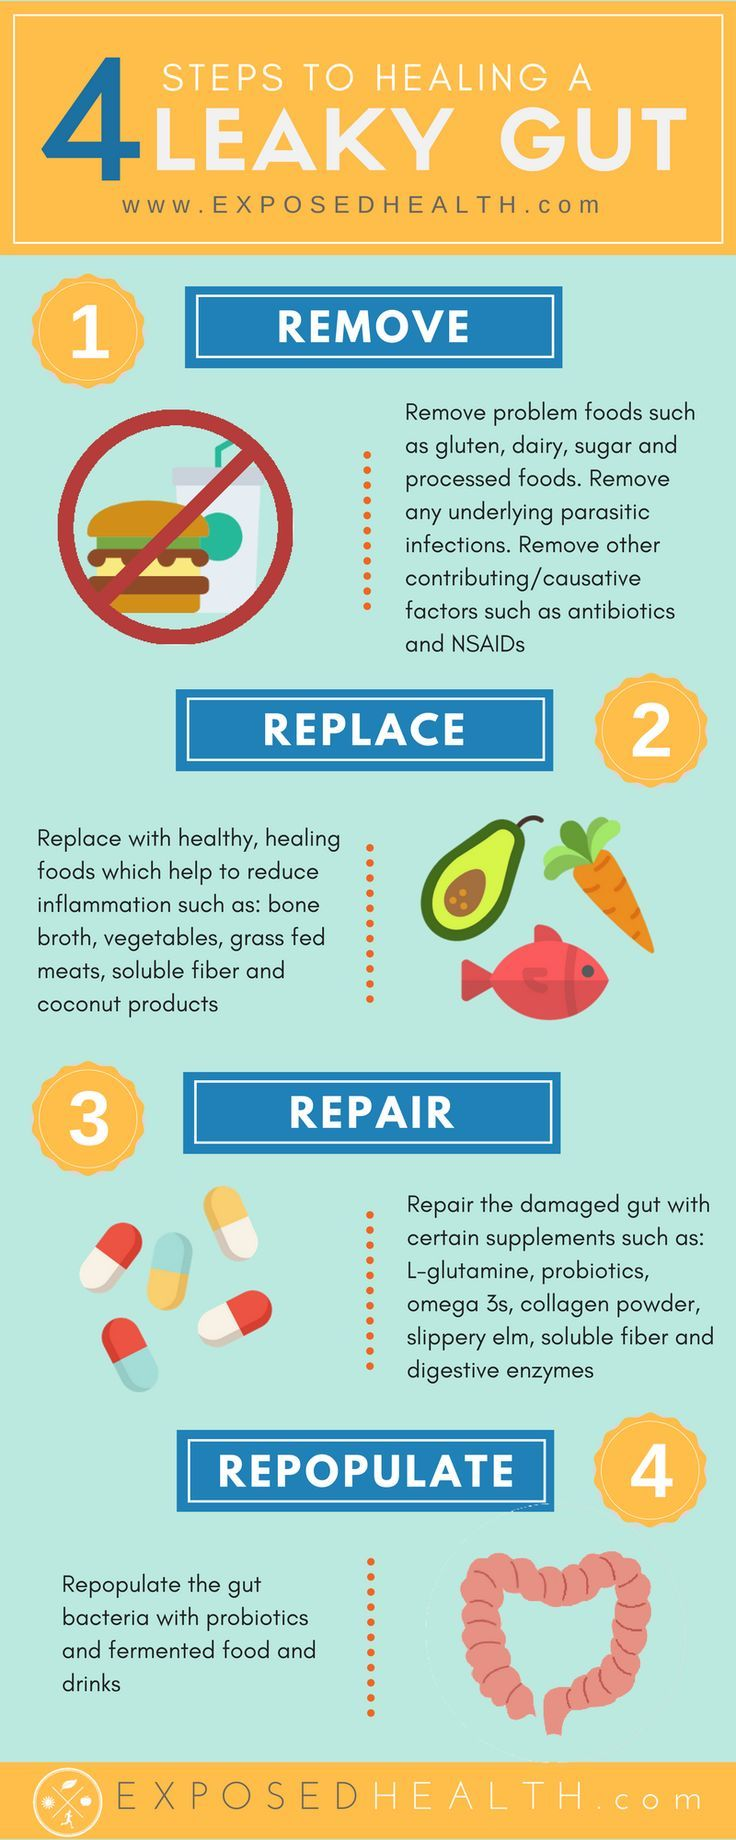 How To Heal A Leaky Gut Gut Health Diet Leaky Gut Syndrome Digestive Health